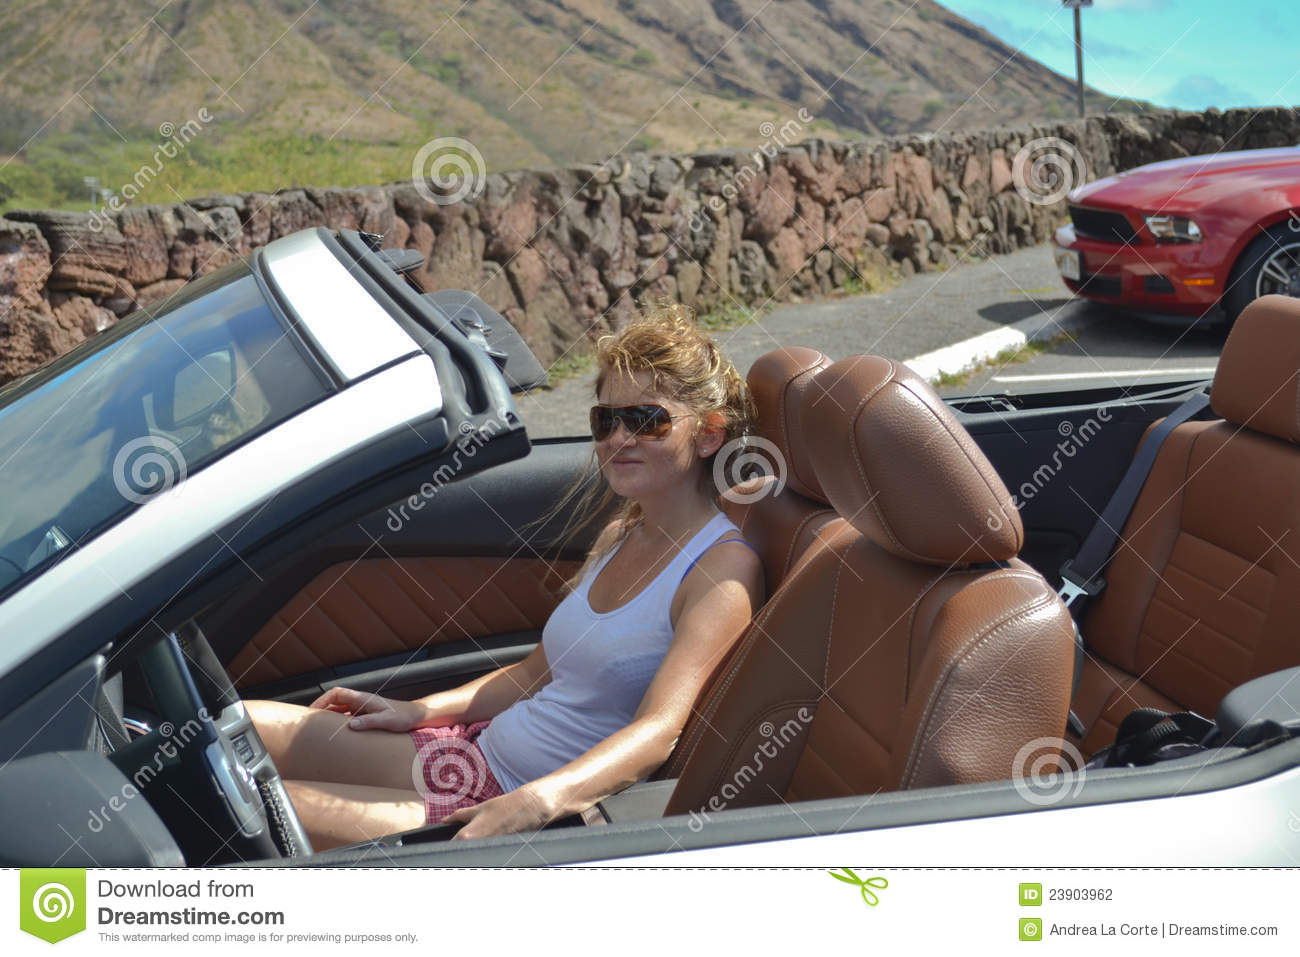 Video naked girl driving convertible cars sorry